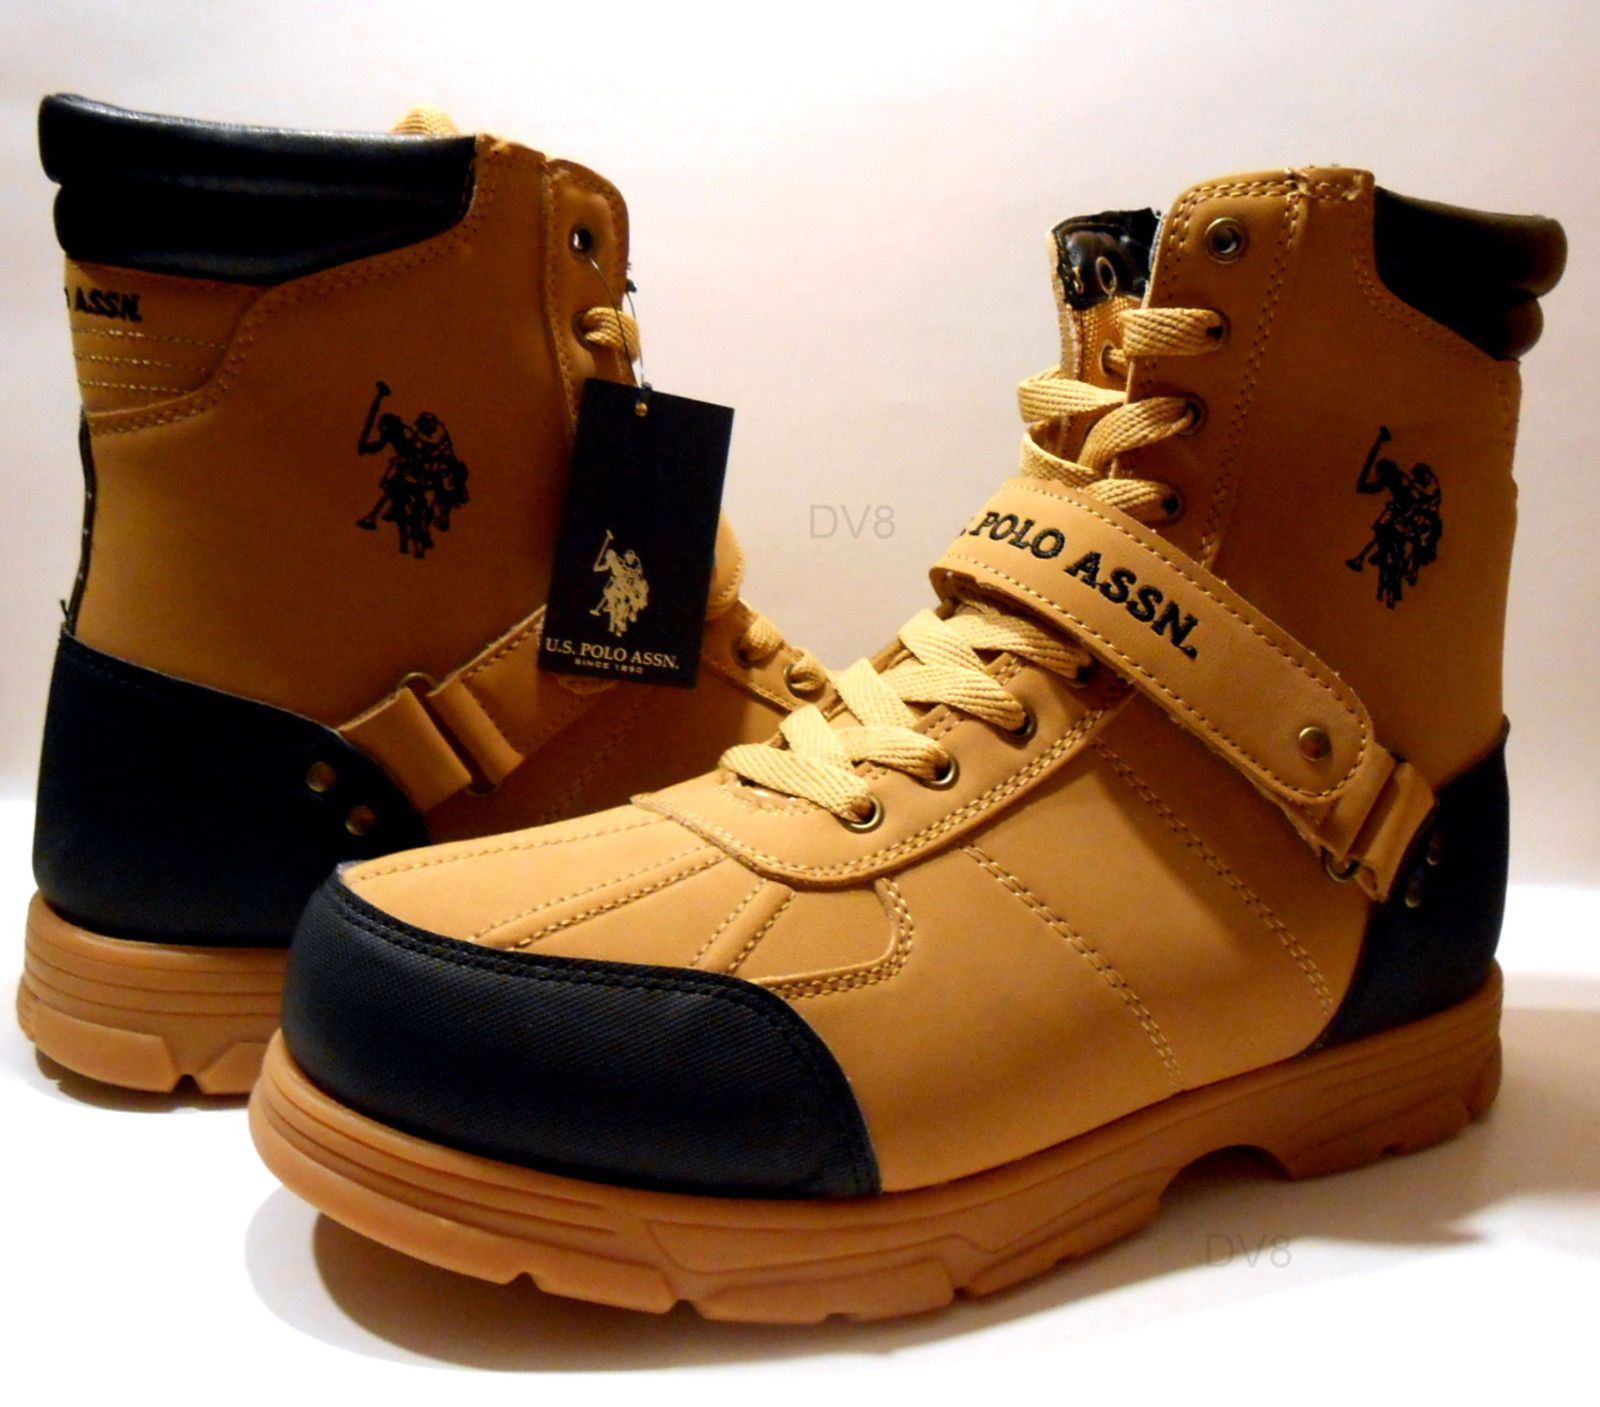 9a34d0143ba Details about Mens Boots by U.S. Polo Assn Crusade 2 Hi,Pick Your ...